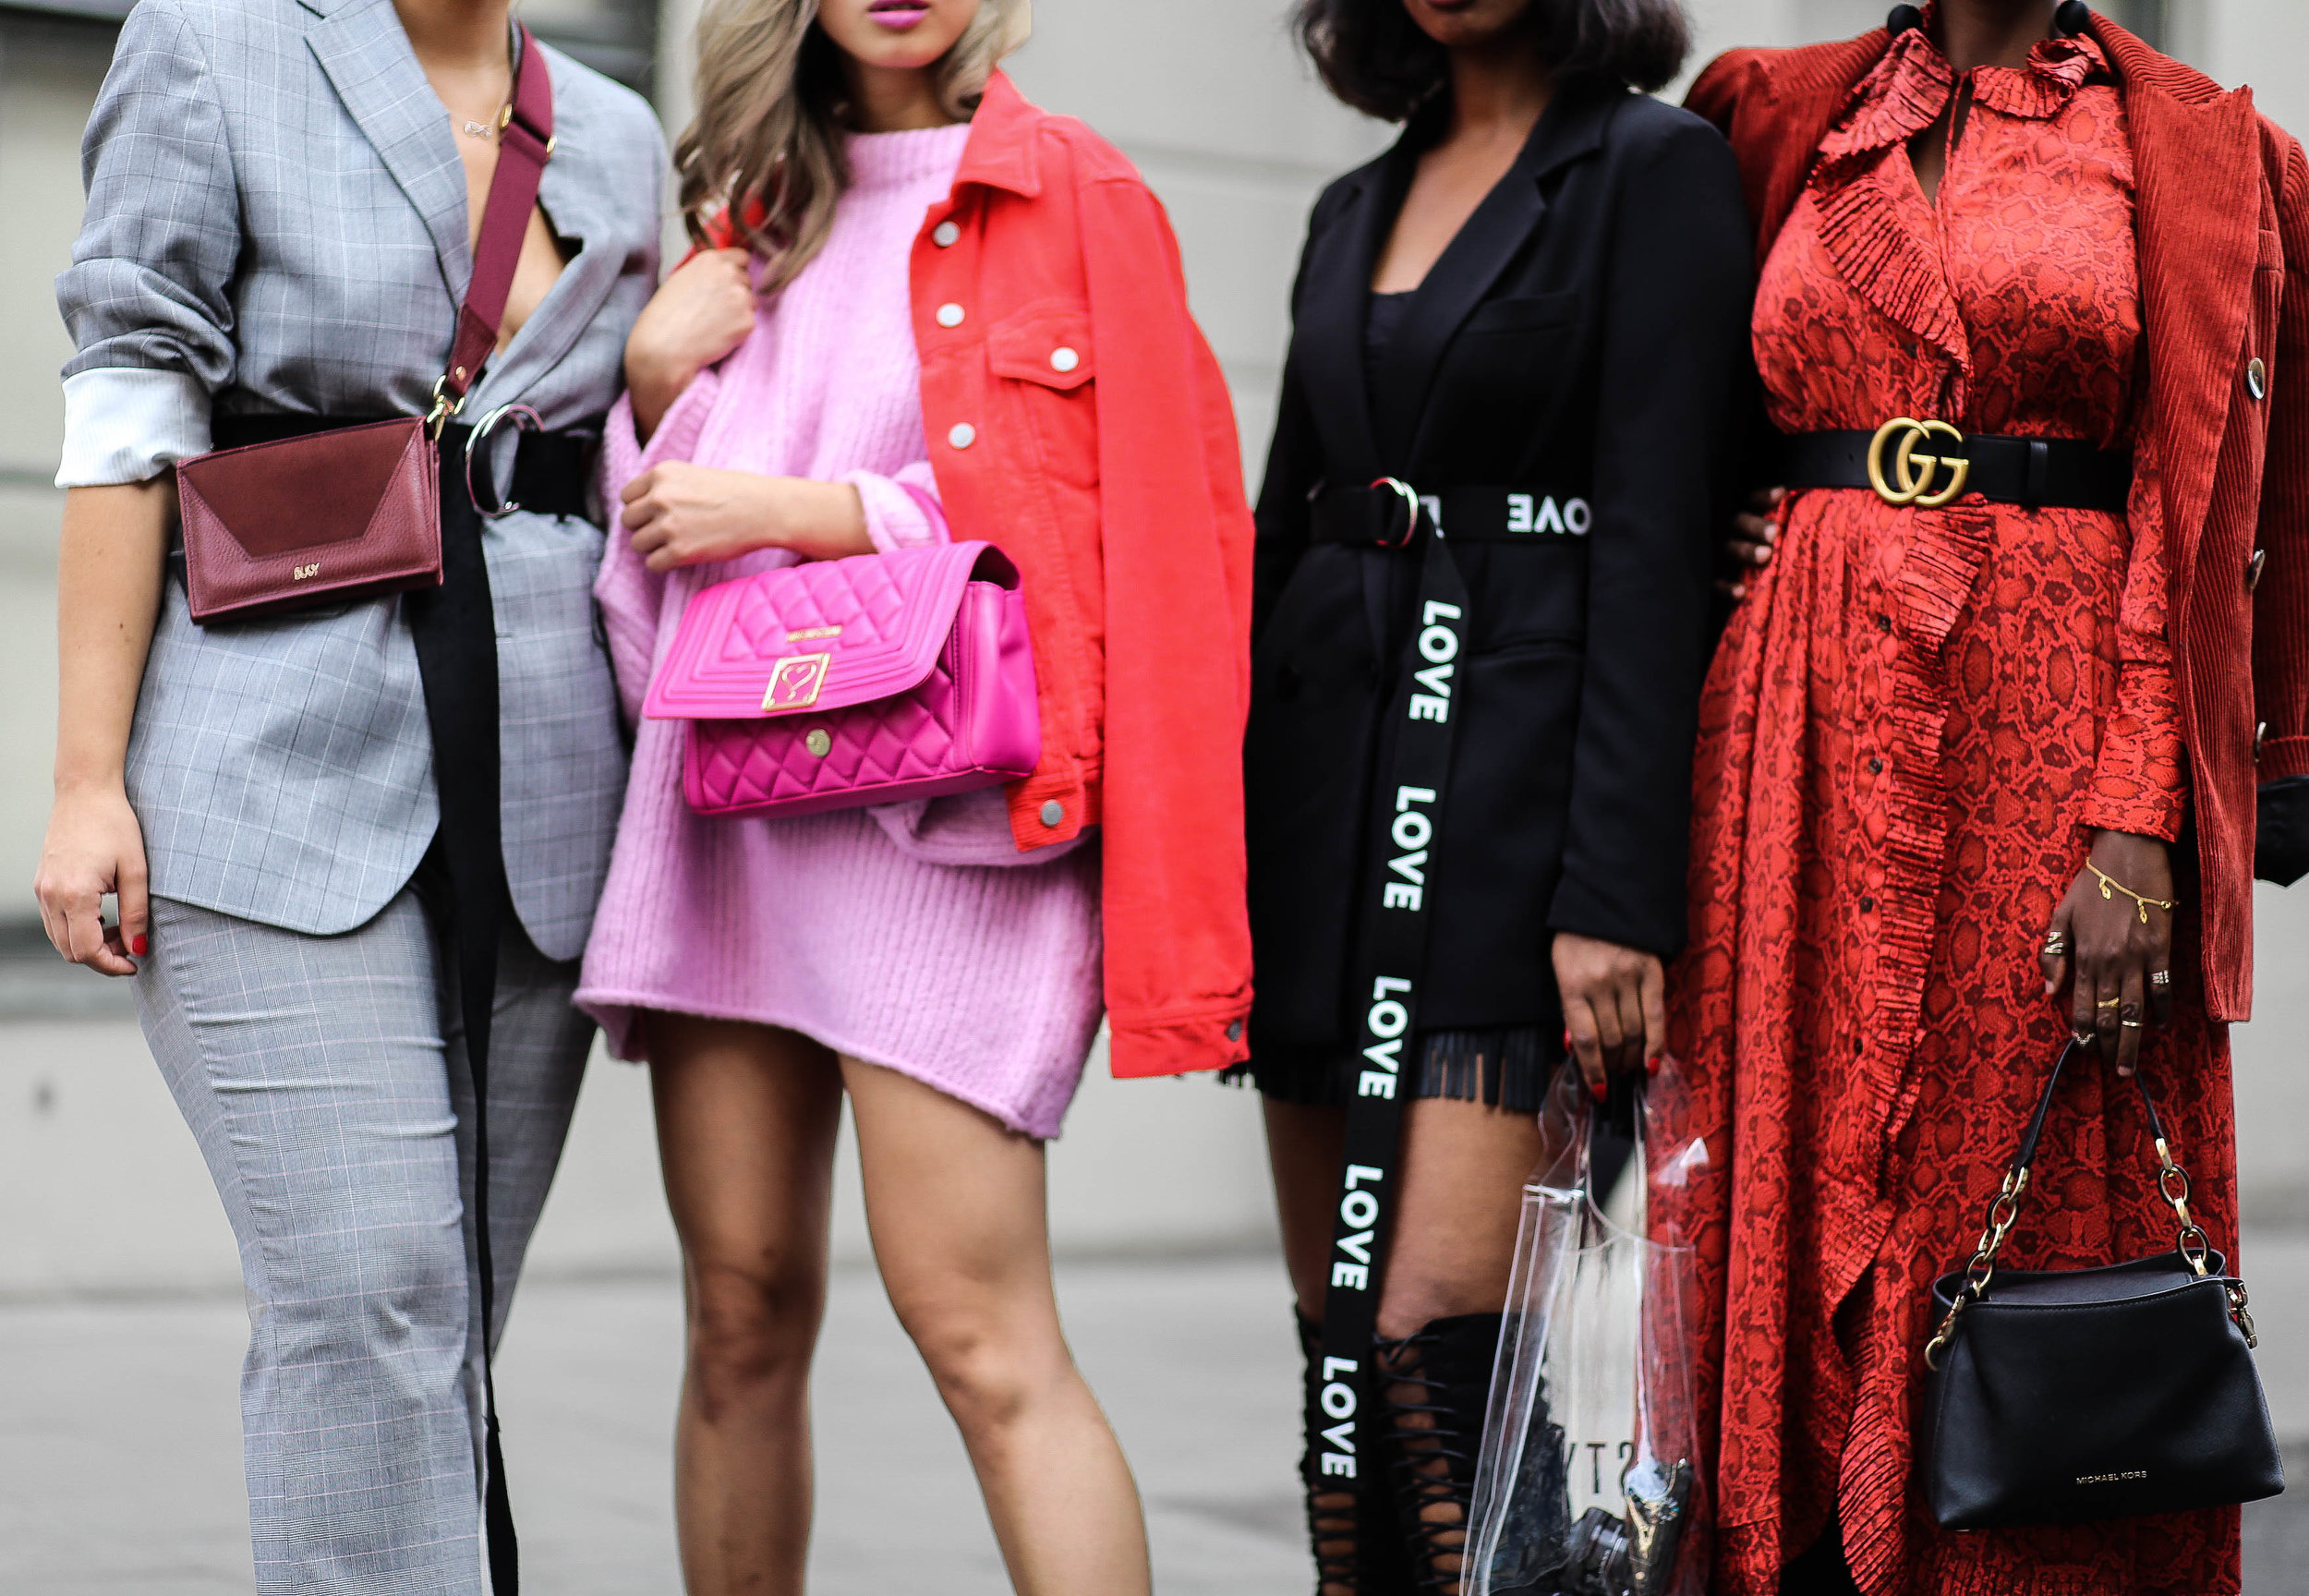 stockholm fashionweek, streetstyle, ss19, about that look, aboutthatlook